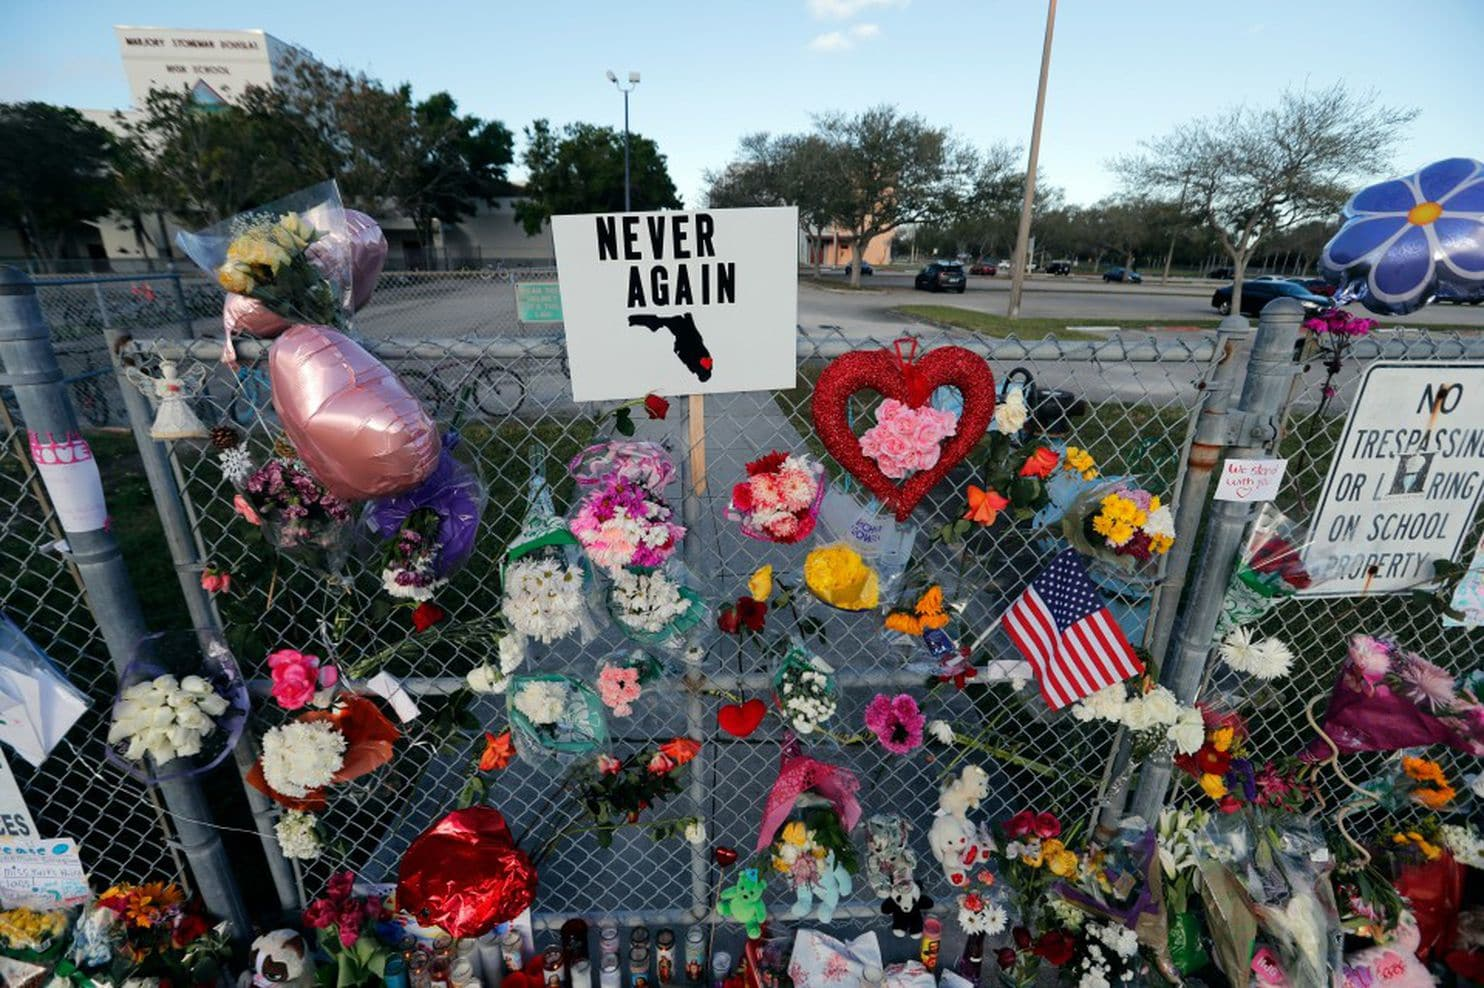 The Washington Post: In an era of school shootings, how can we expect kids to focus on learning? -